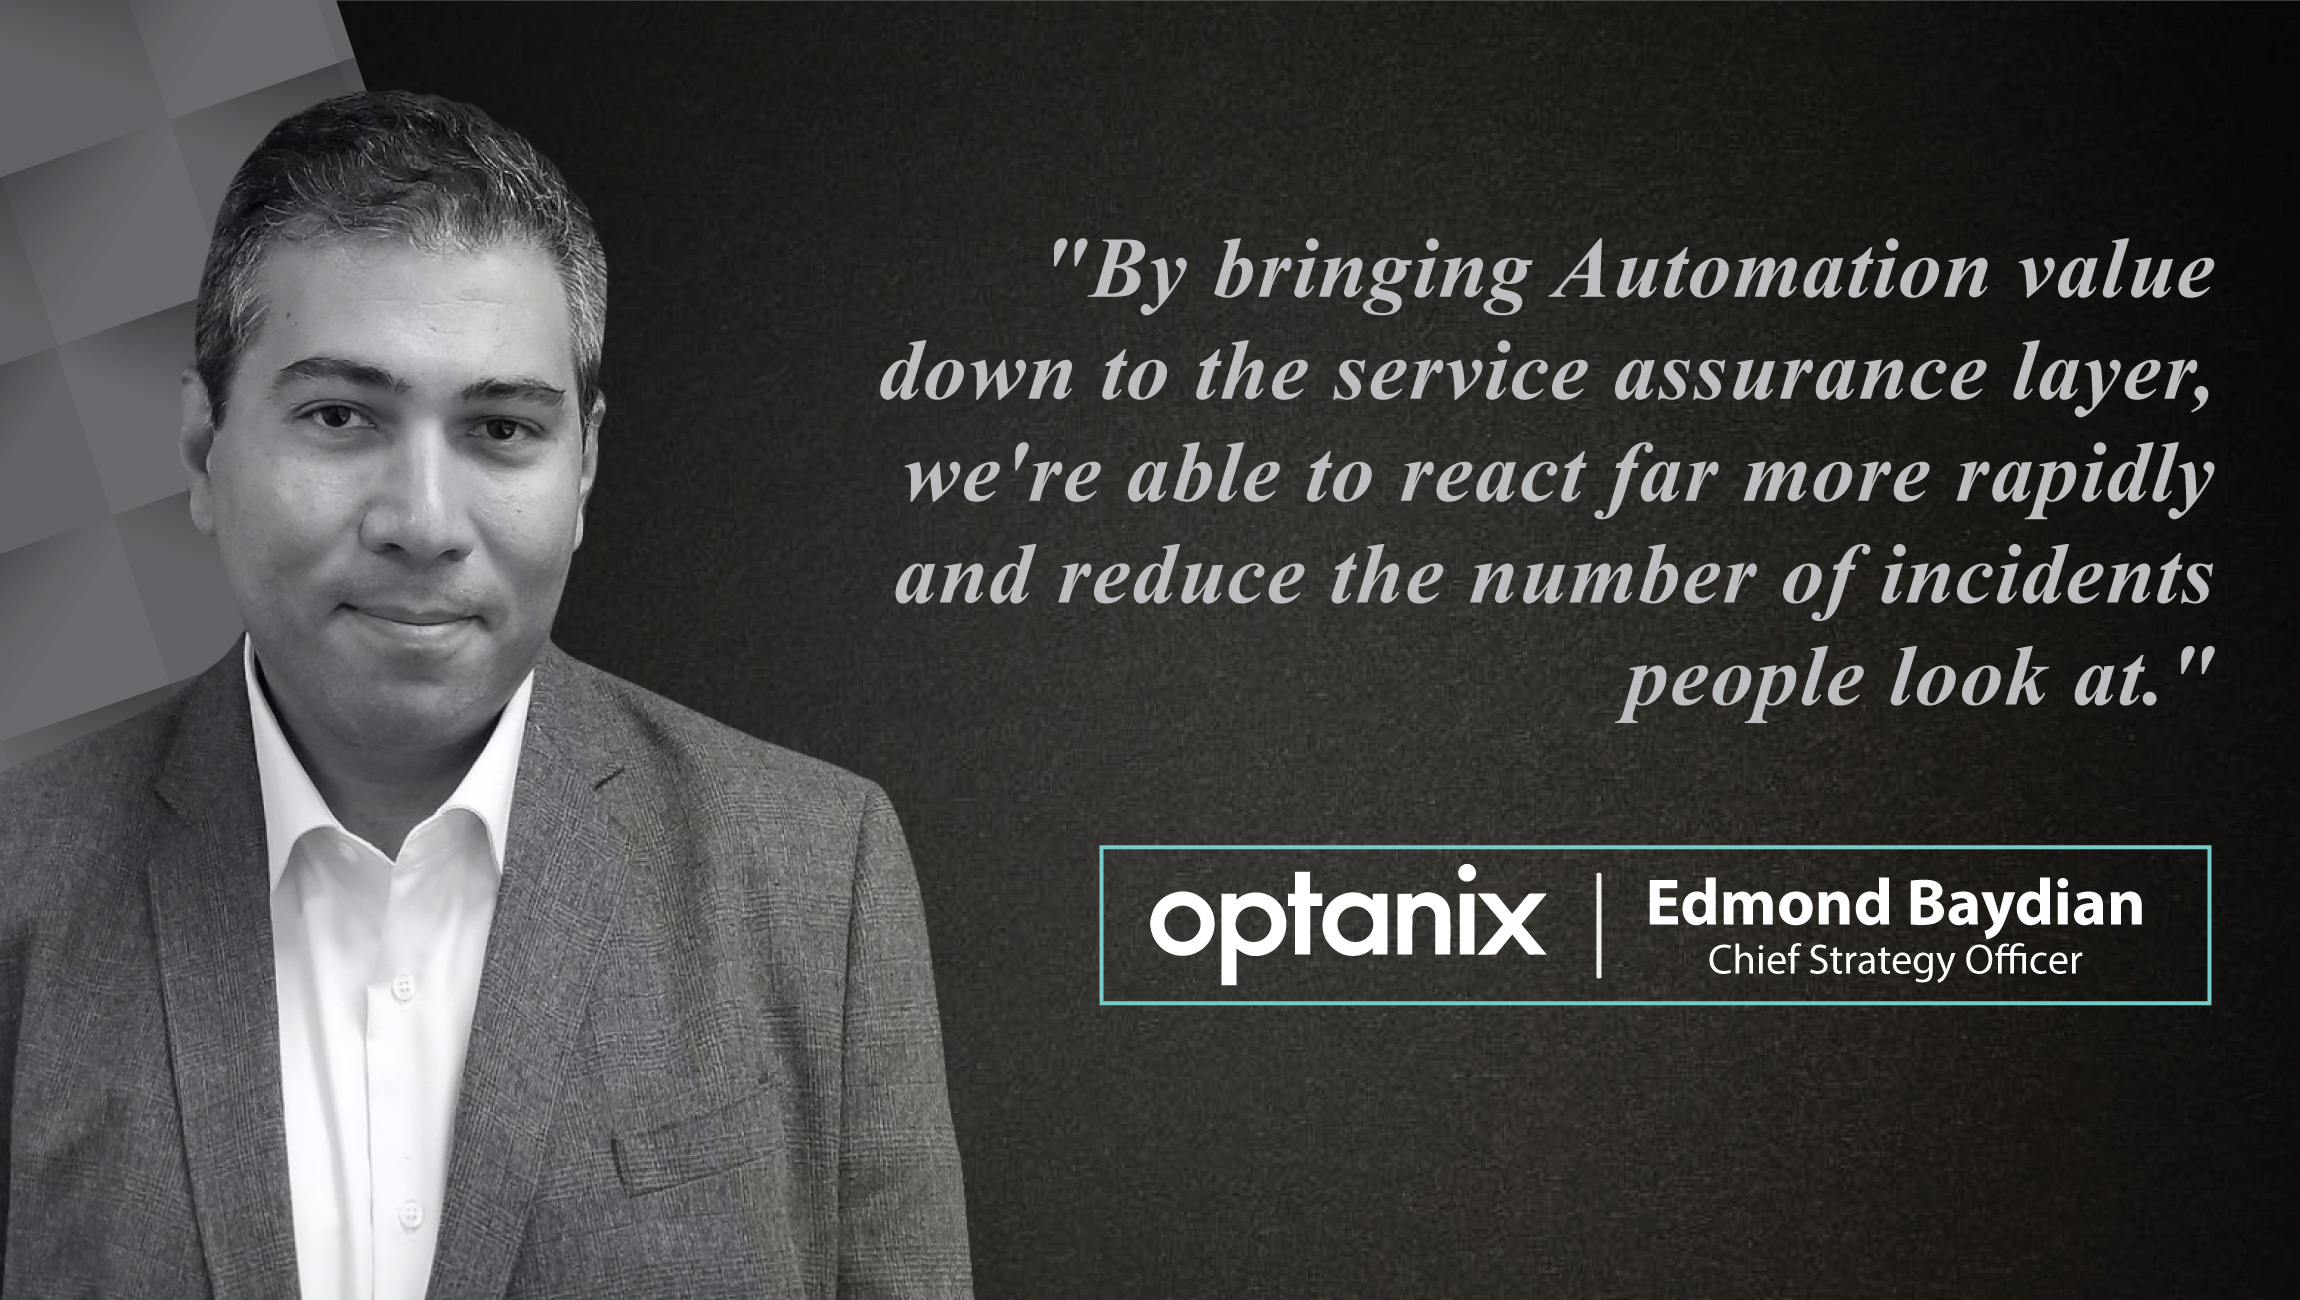 AiThority Interview Series with Edmond Baydian, Chief Strategy Officer at Optanix